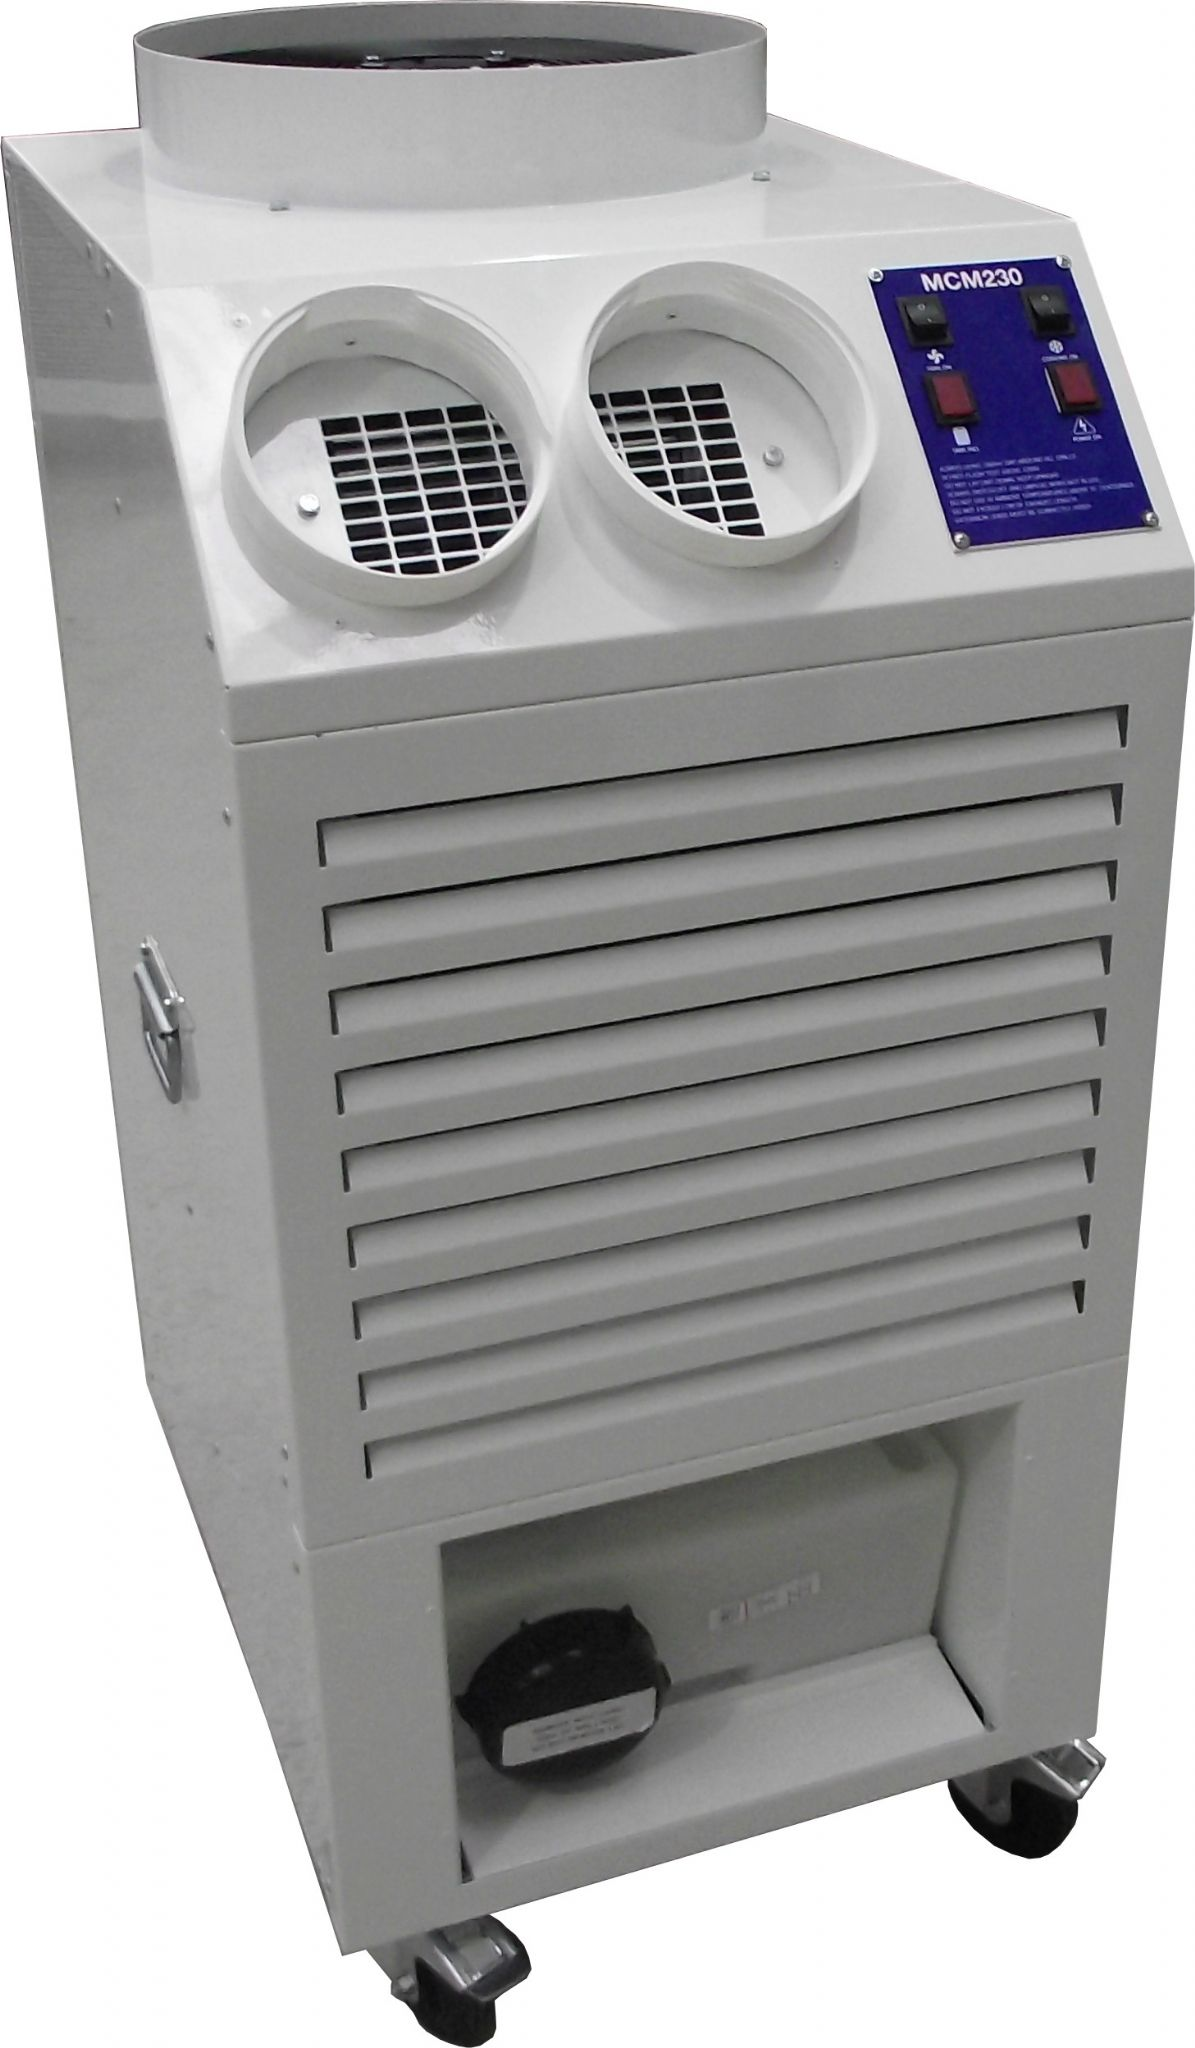 Broughton Mcm230 7kw 23000 Btu Industrial High Output